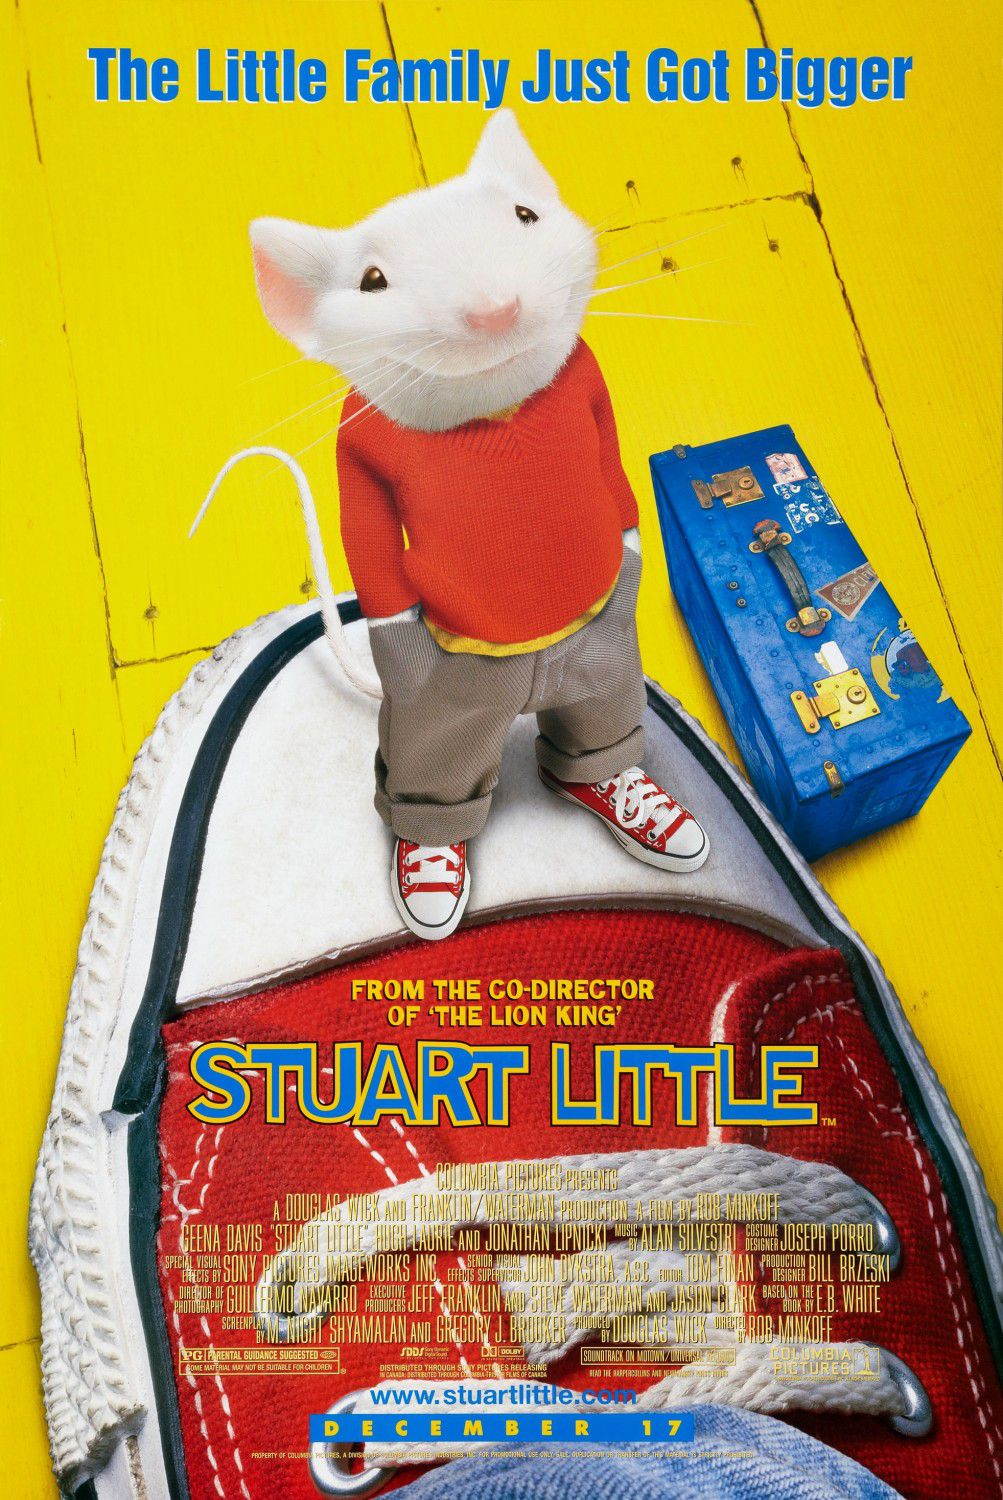 Stuart Little - mouse poster